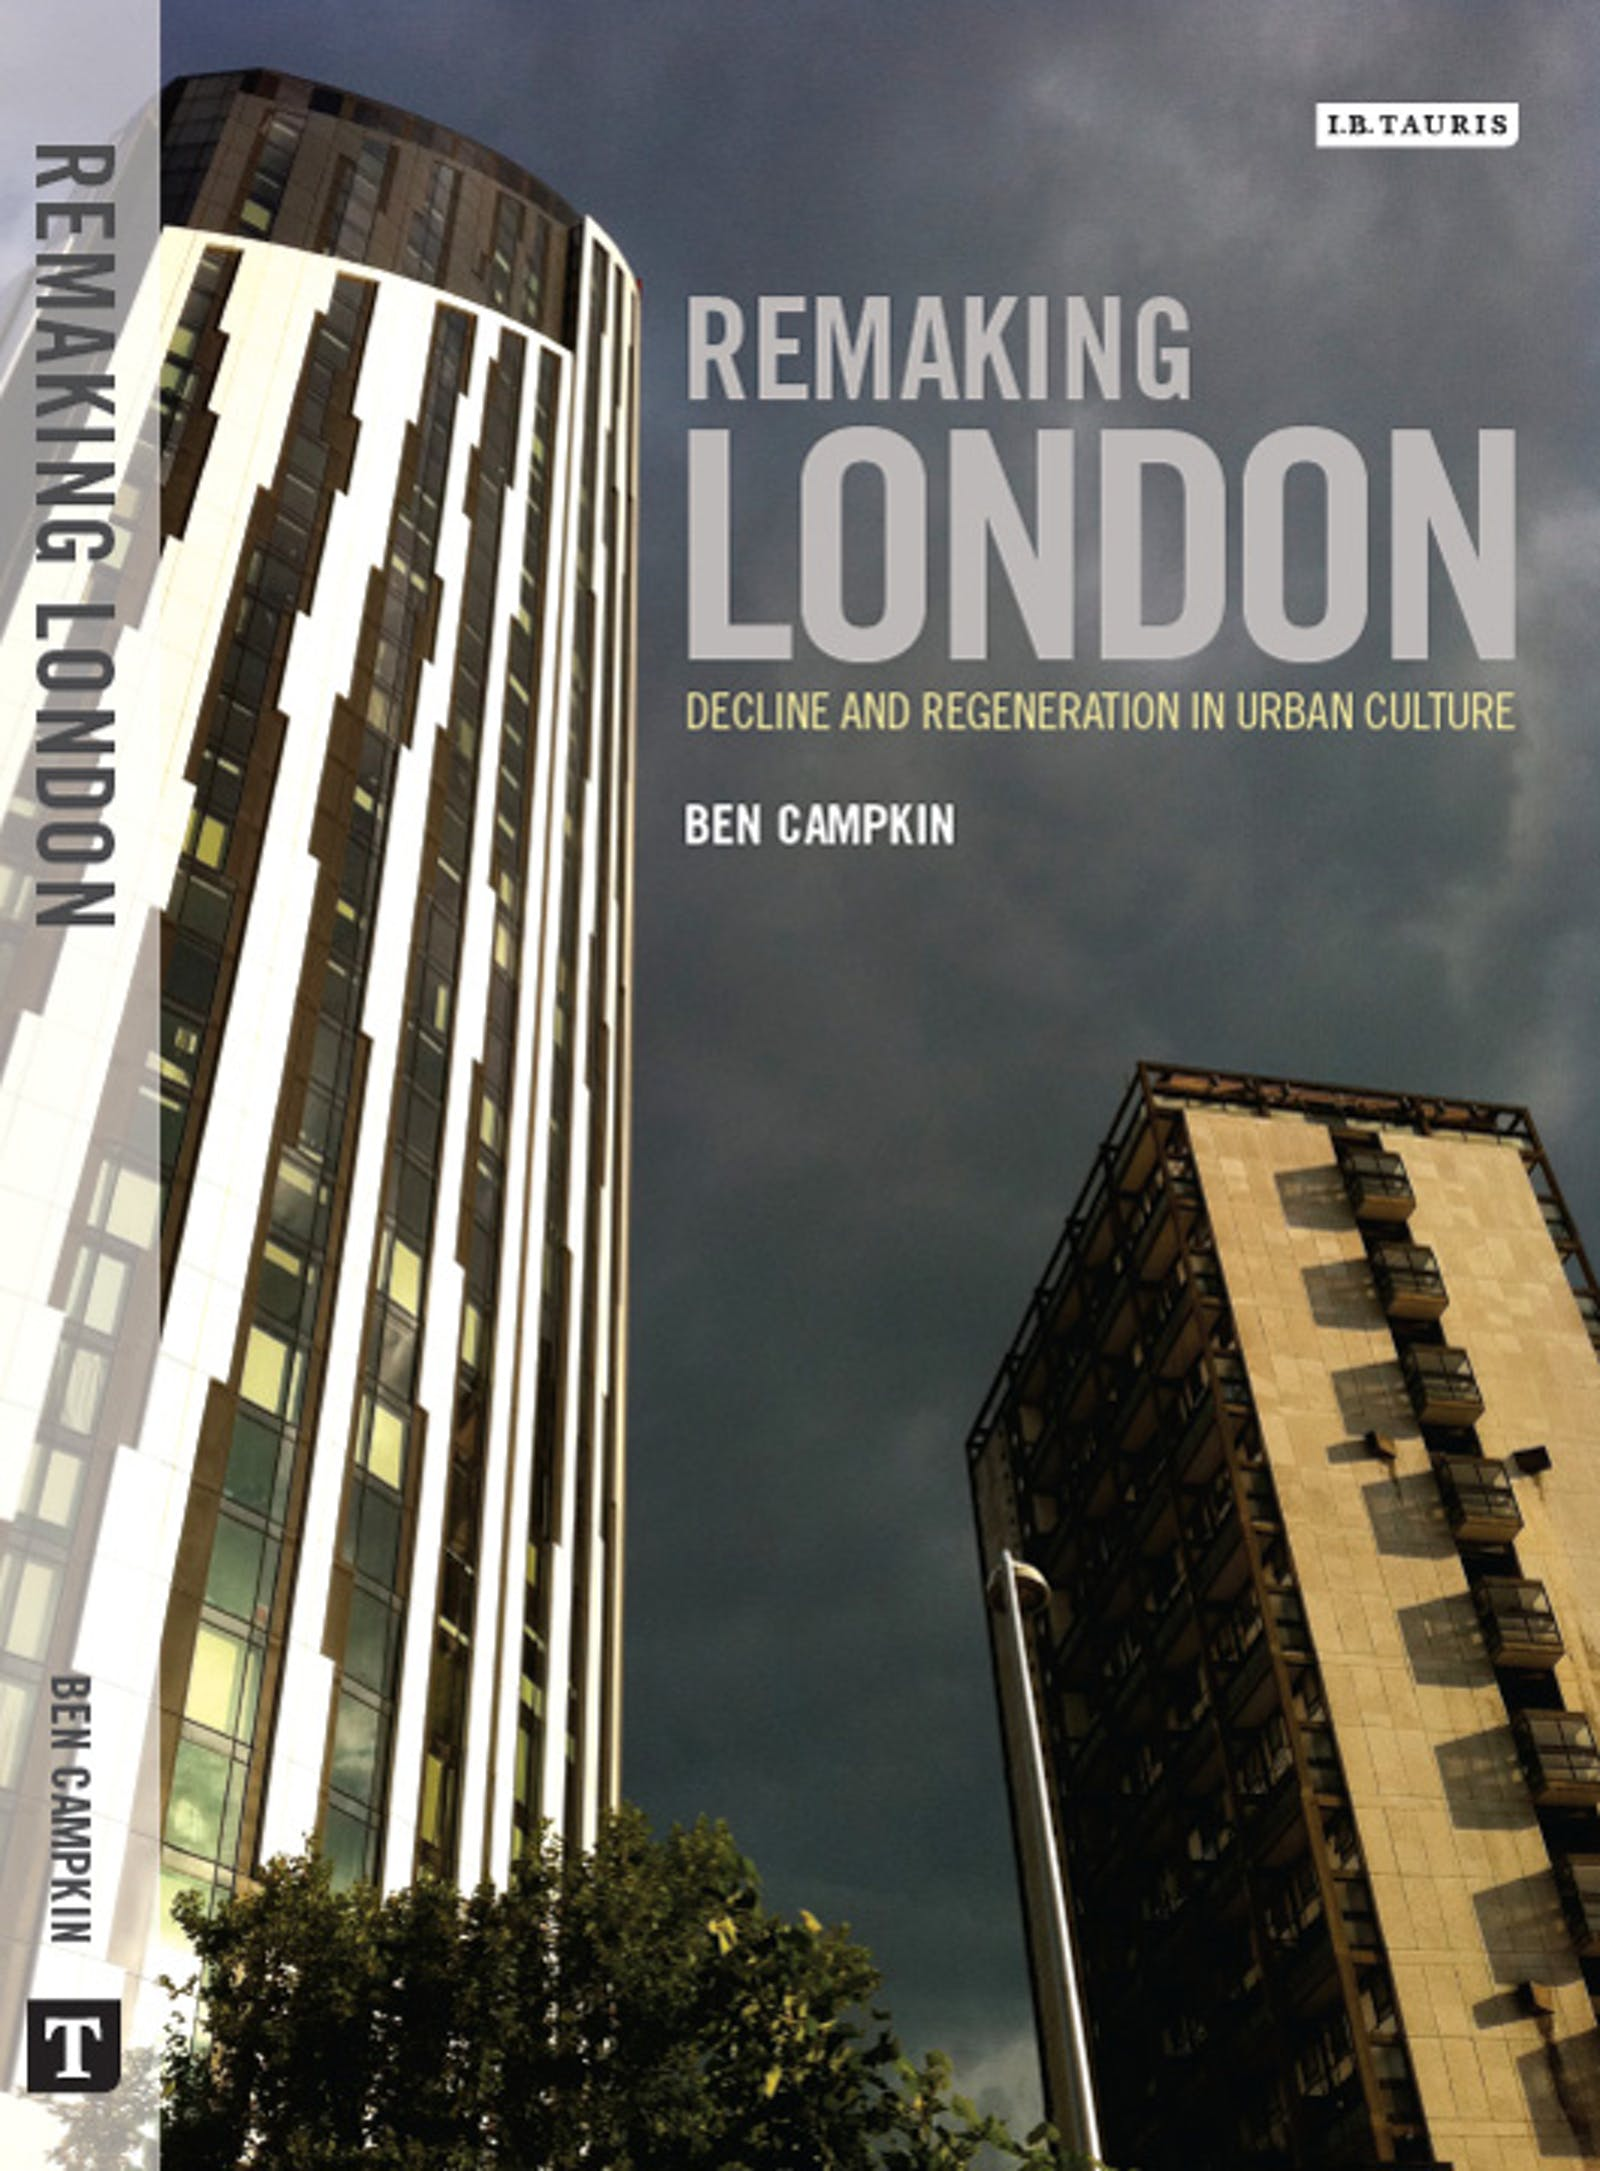 urban regeneration london Urban regeneration in london: lessons from our global neighbours for the first time in its history, over half of china's 13 billion citizens are living in cities with another 300-400 million expected to be added in the next 15-20 years, the need for regeneration in china's major cities has never been so prevalent.